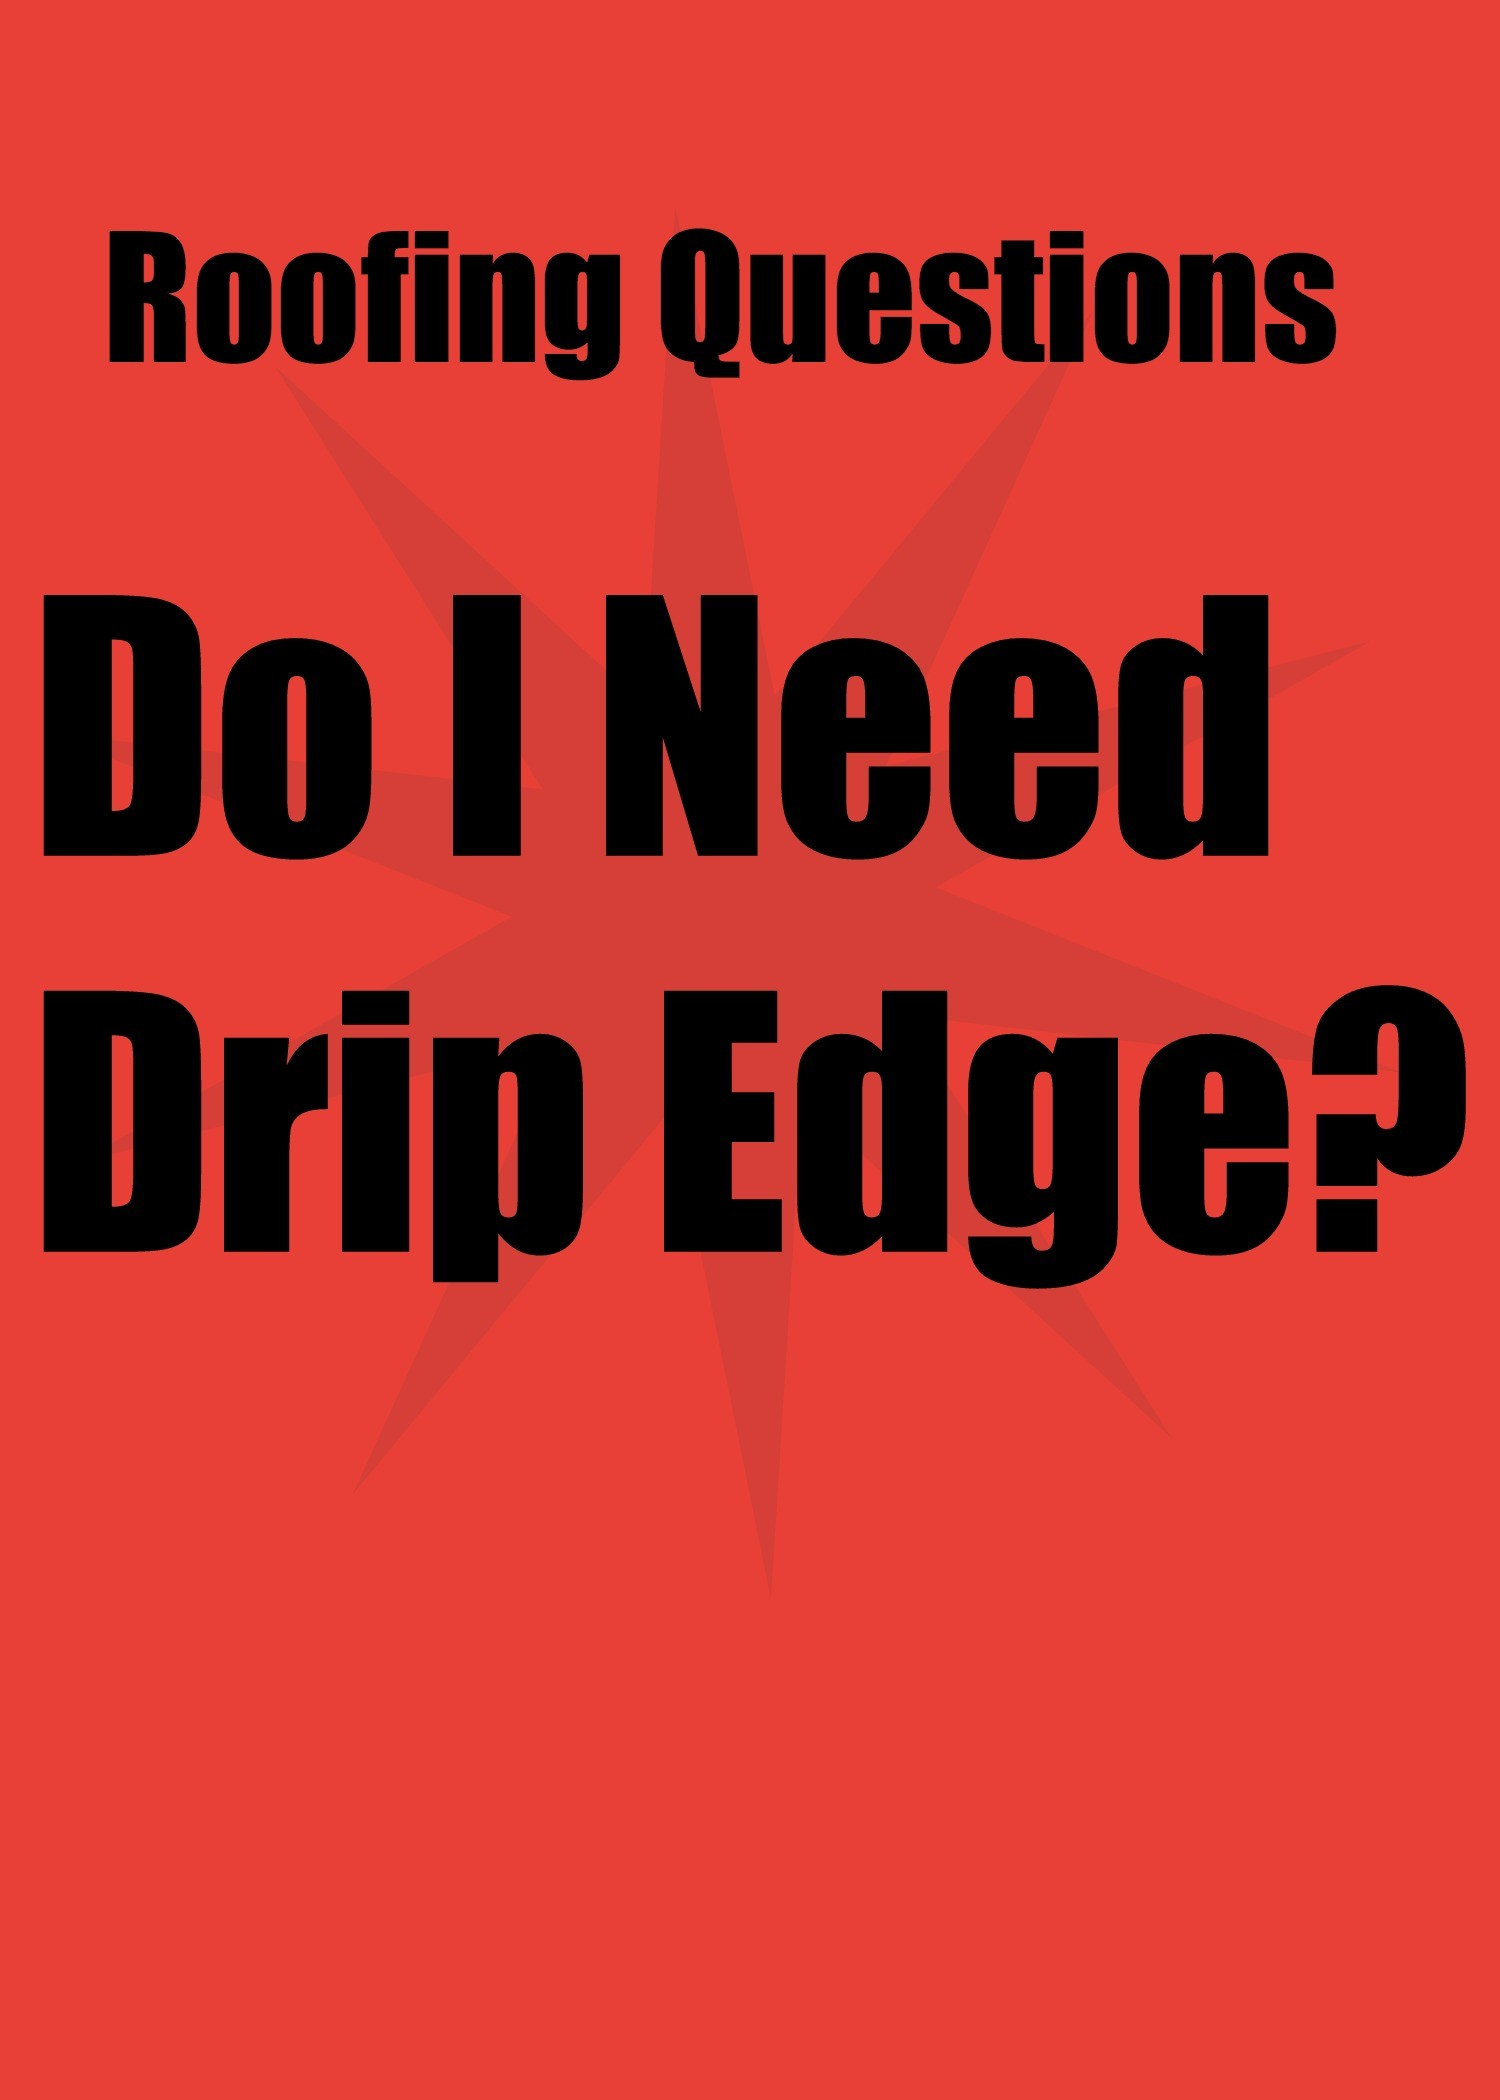 Image Result For Roofers Edge